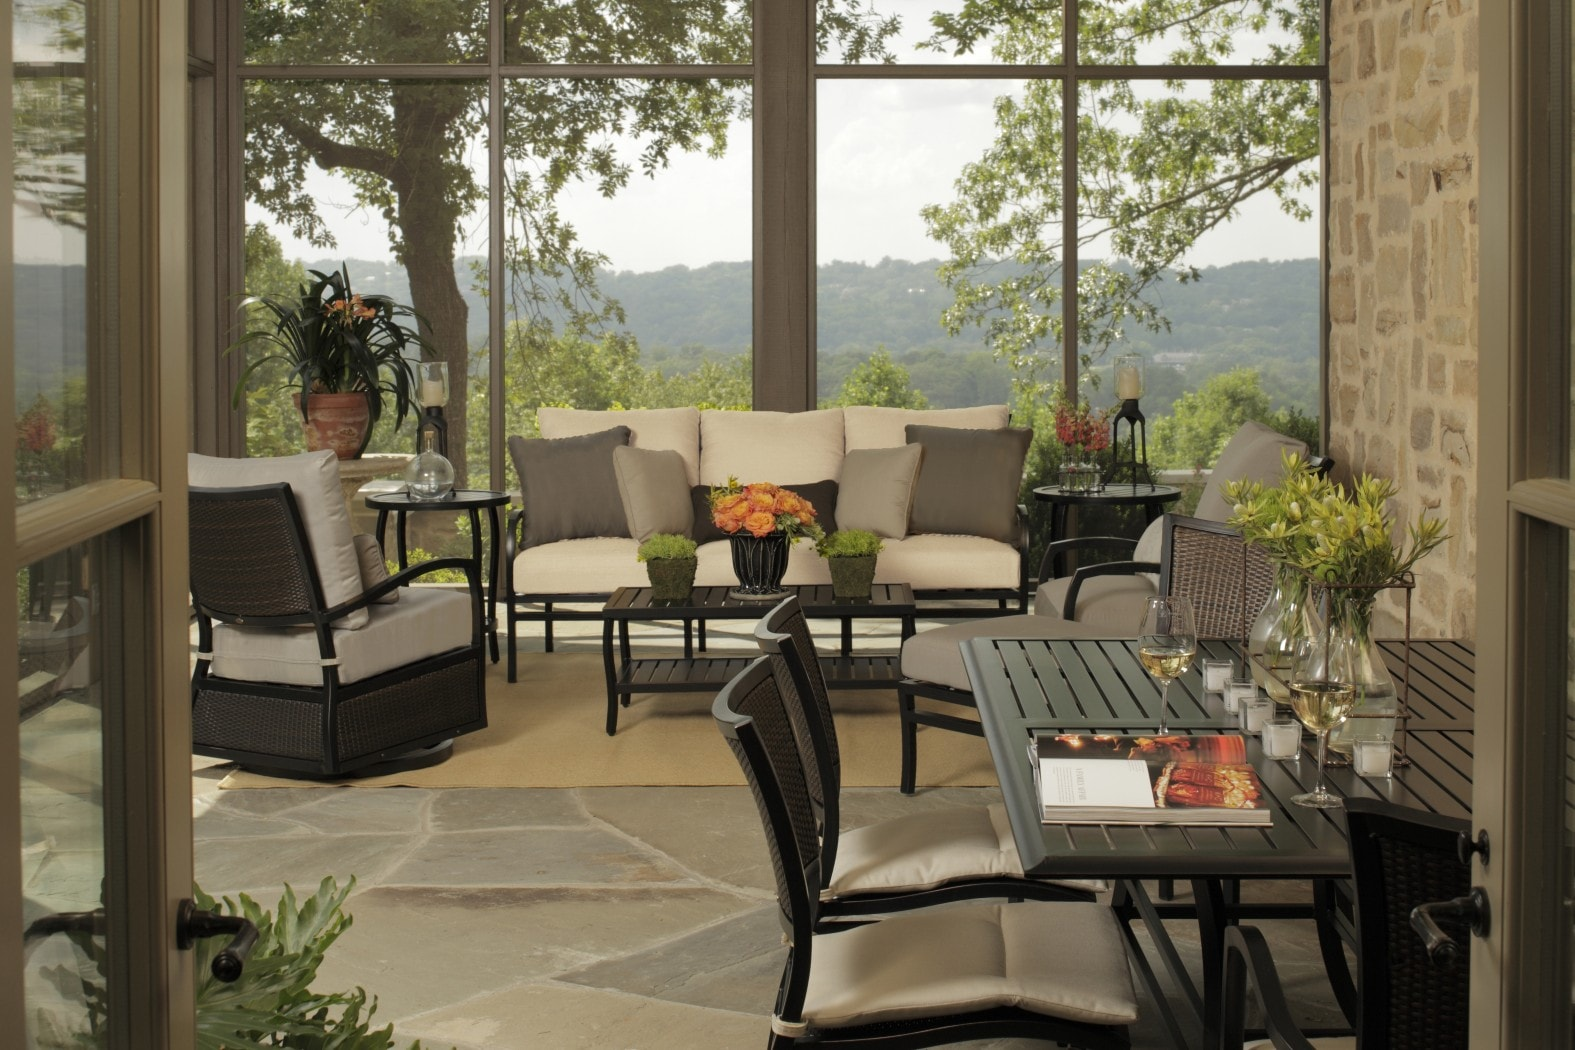 Summer Classics Aire Collection with Cort Table